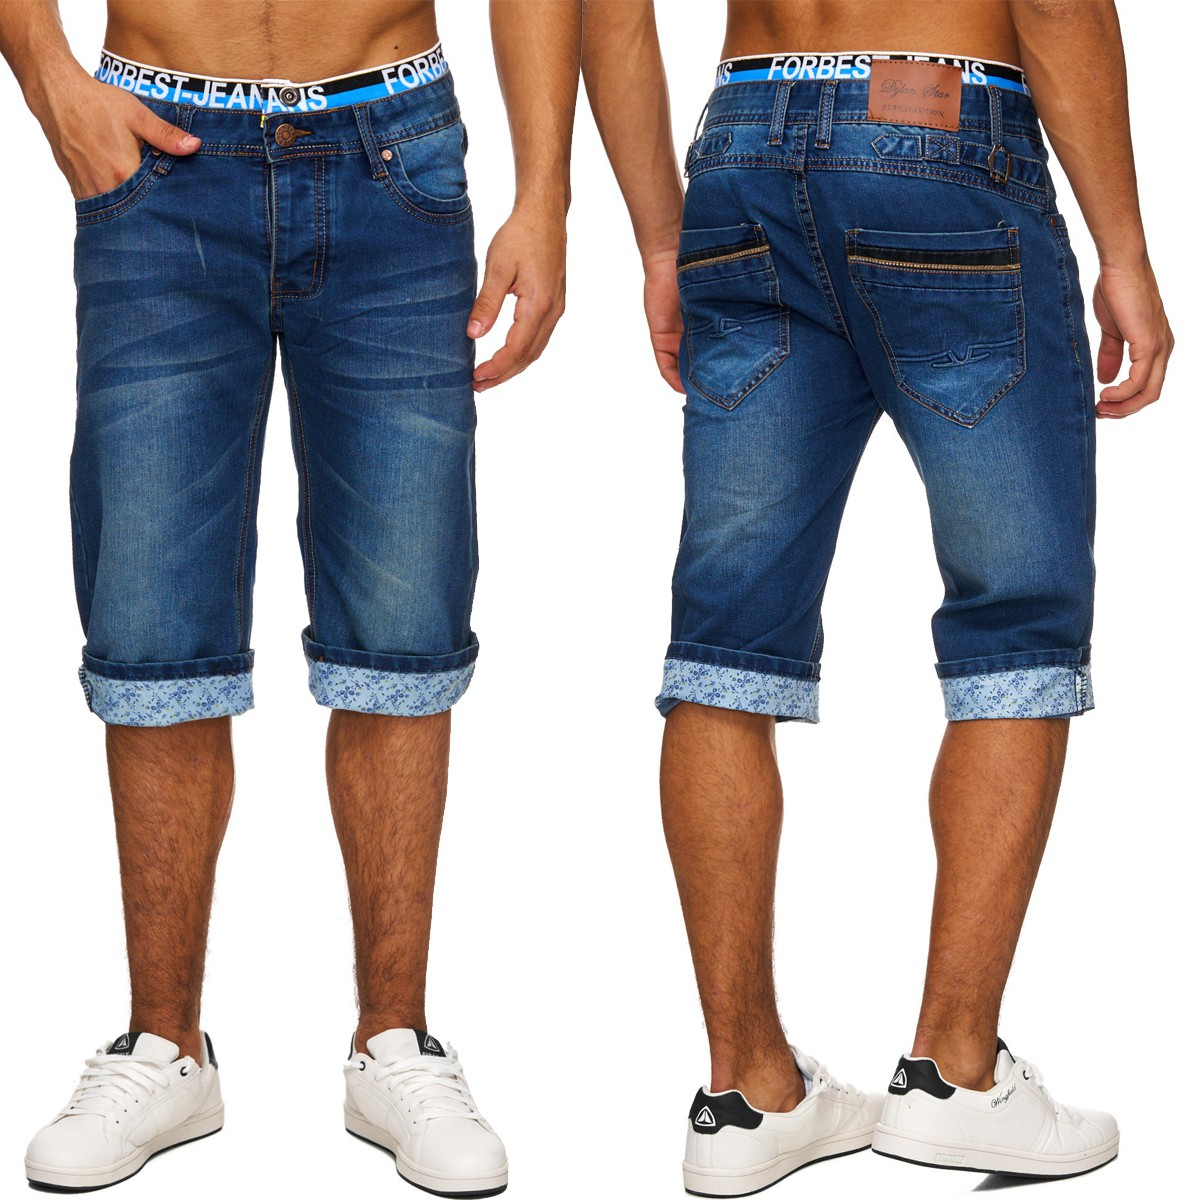 herren bermuda denim shorts jeansshorts lang jeans washed. Black Bedroom Furniture Sets. Home Design Ideas